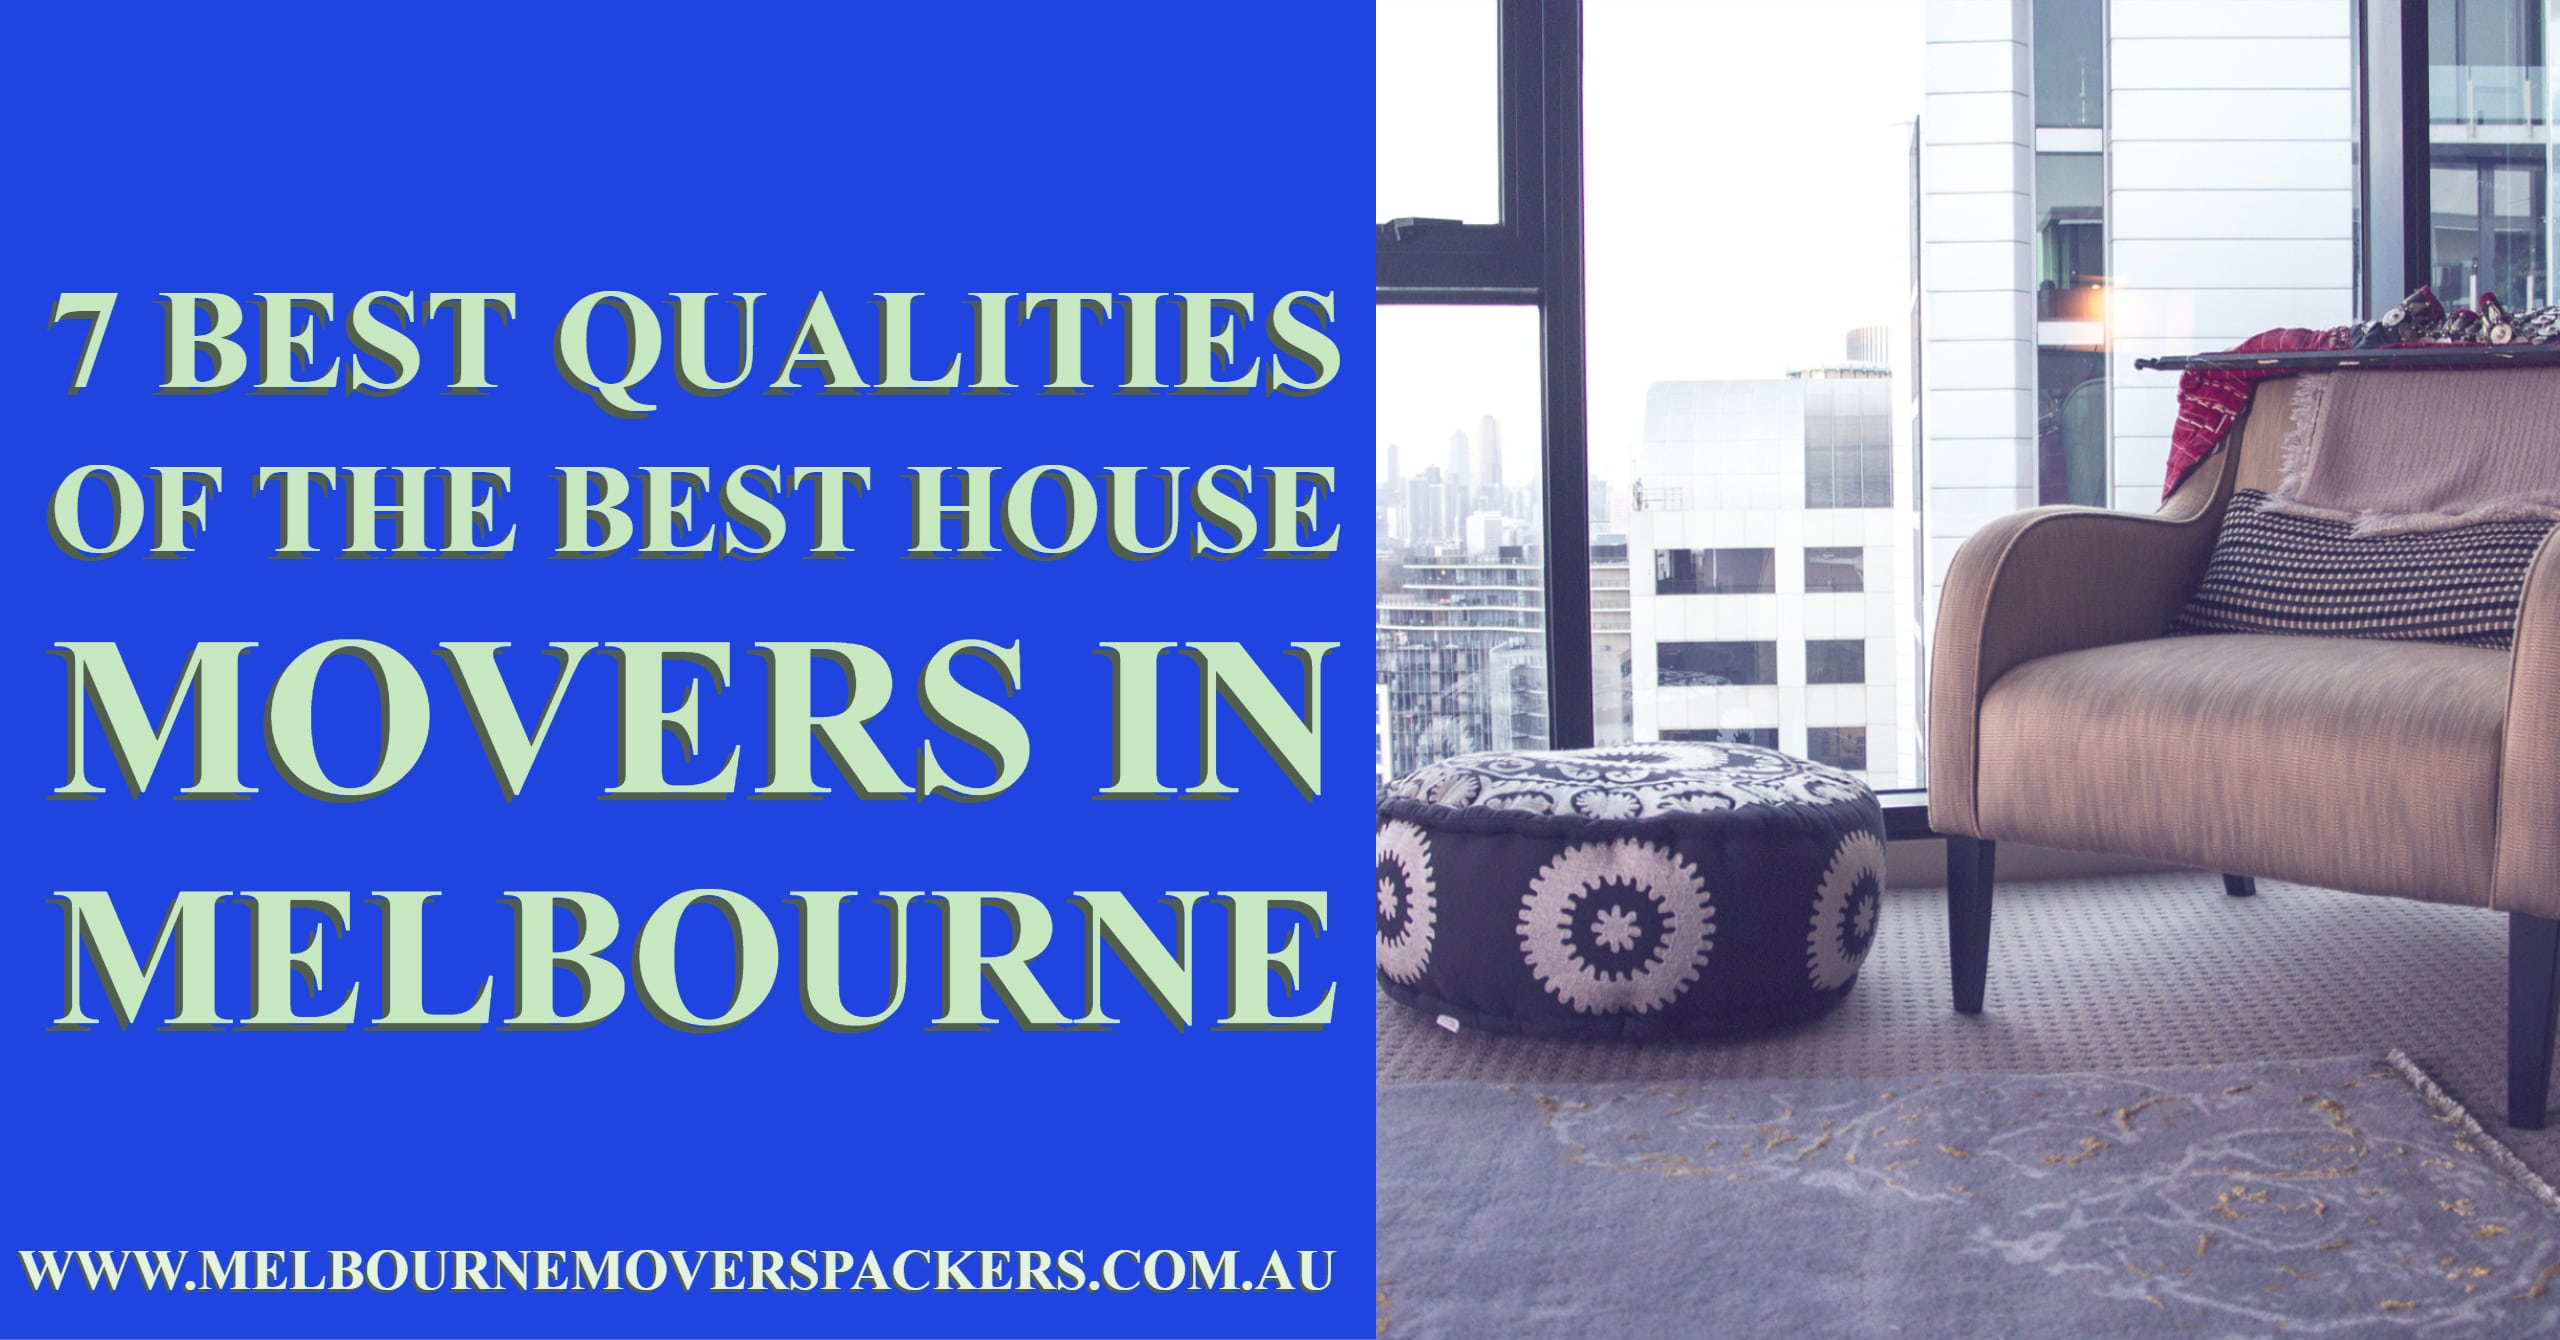 7 Best Qualities of the Best House Movers in Melbourne